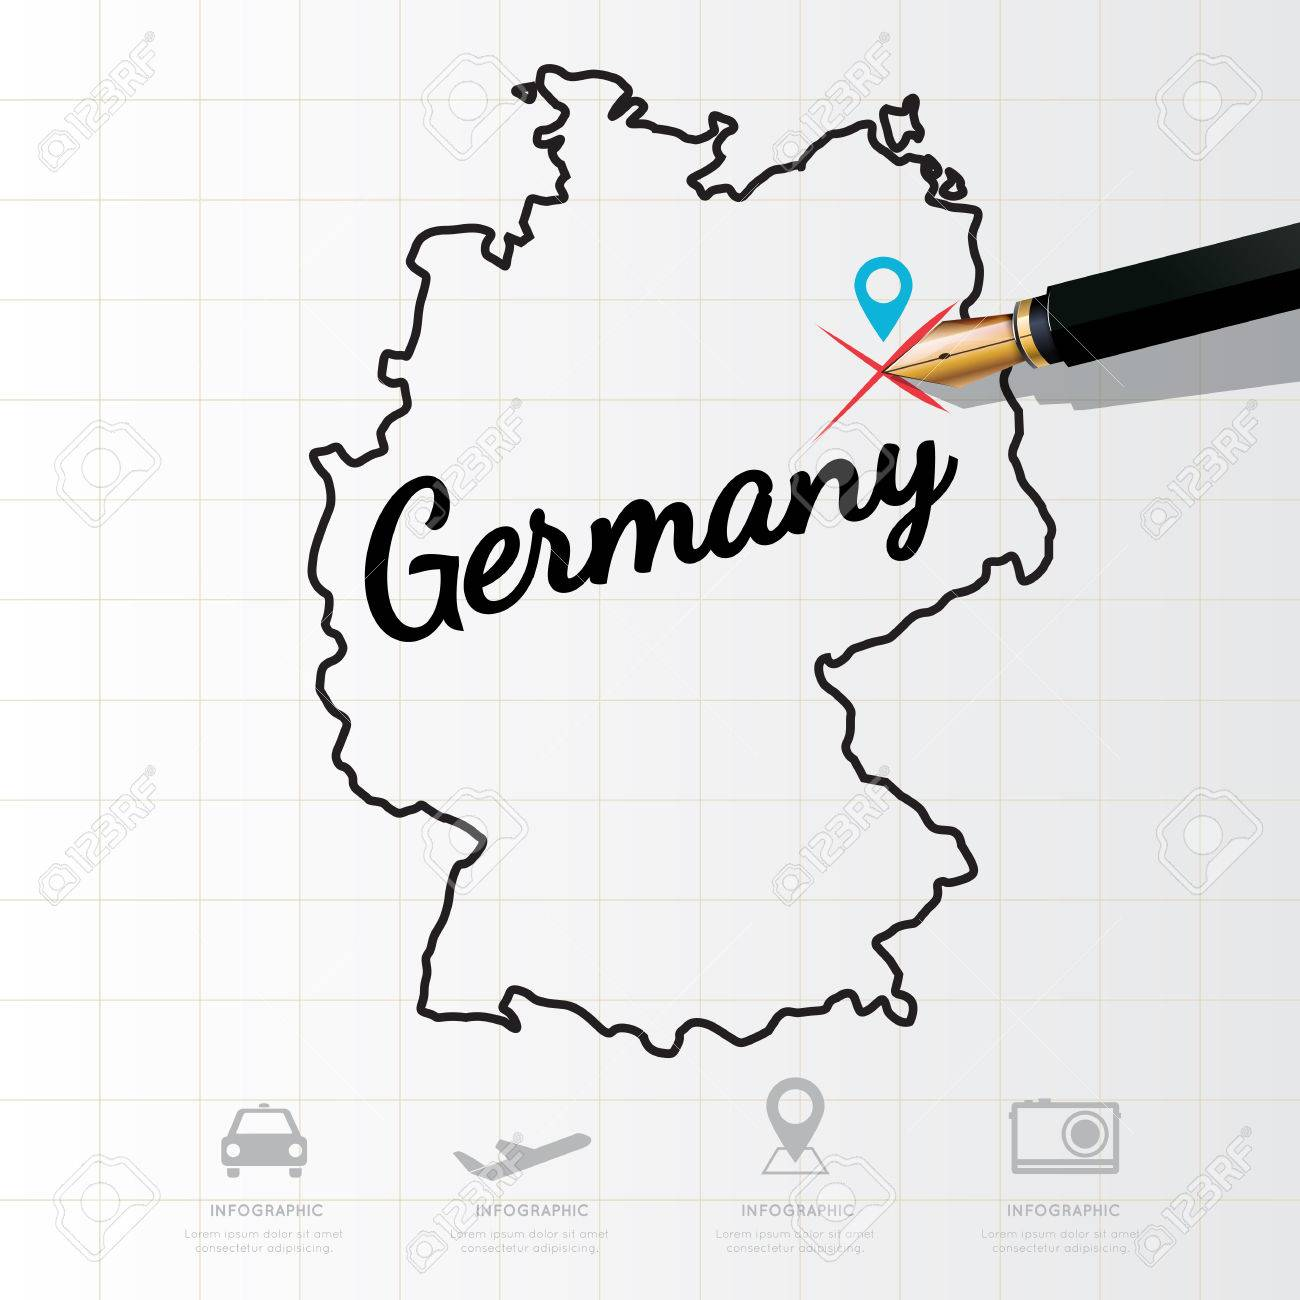 Germany map Infographic - 53792941